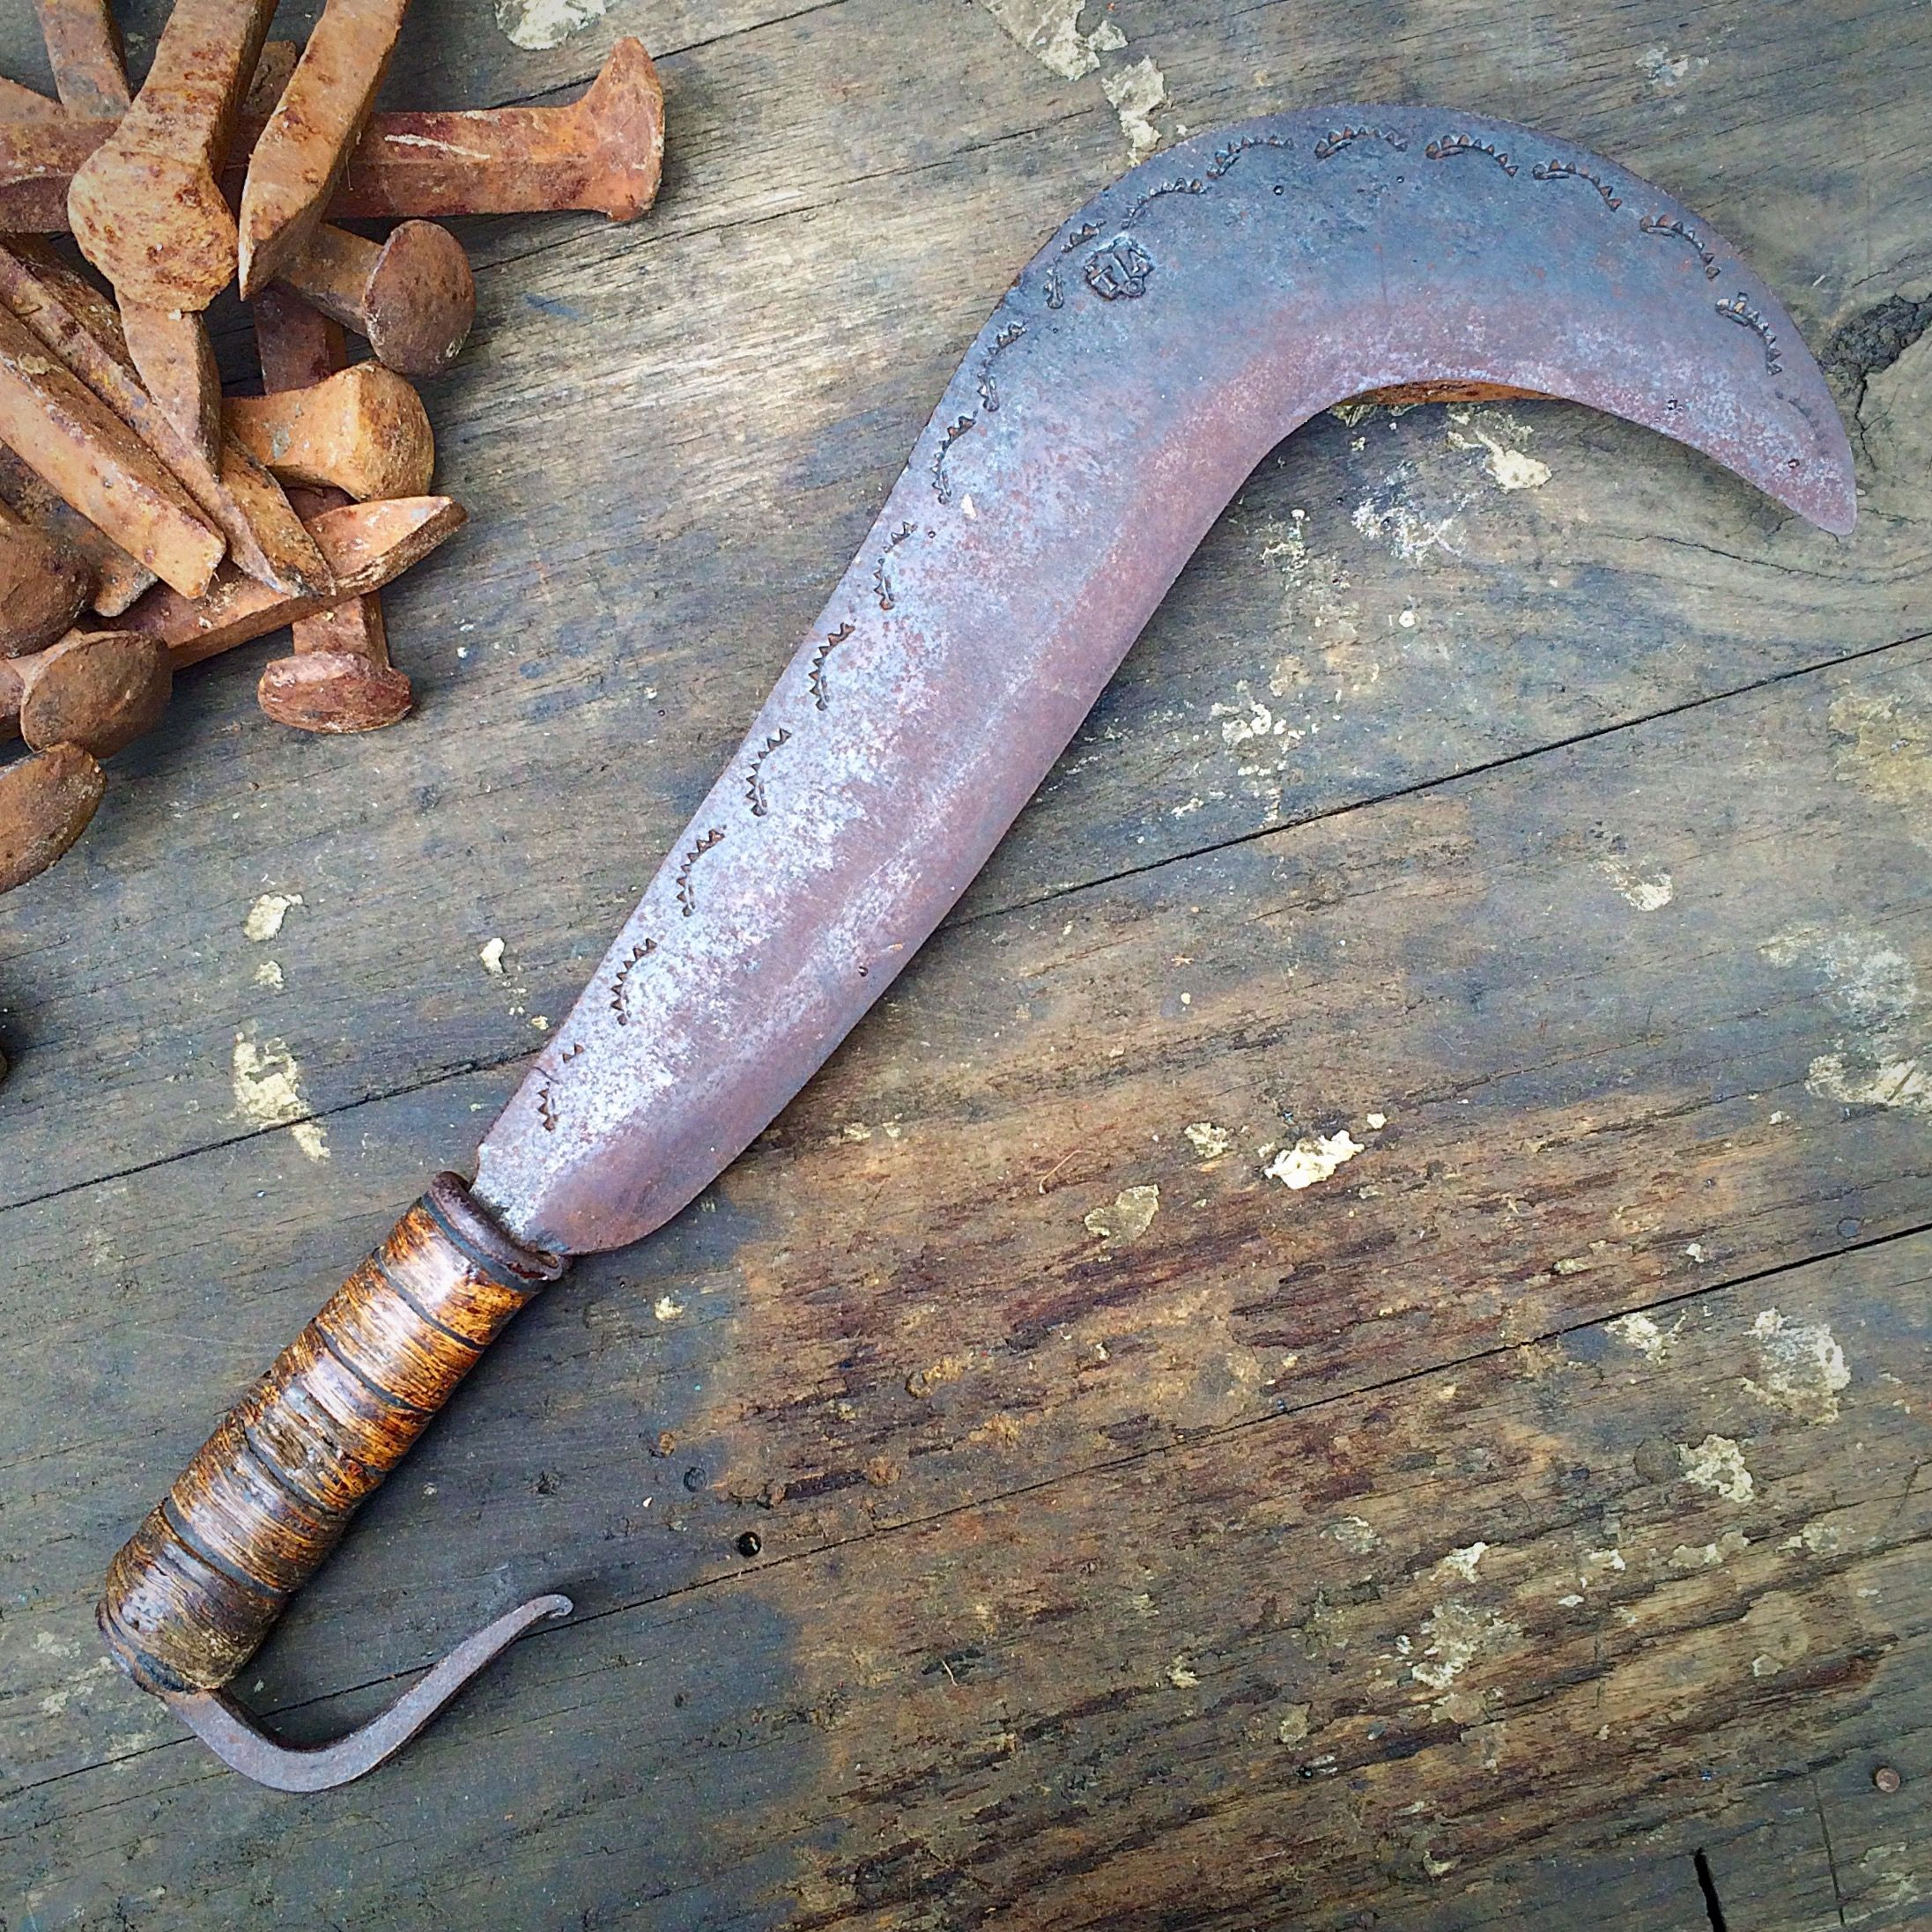 Huge antique iron billhook knife. Collection of